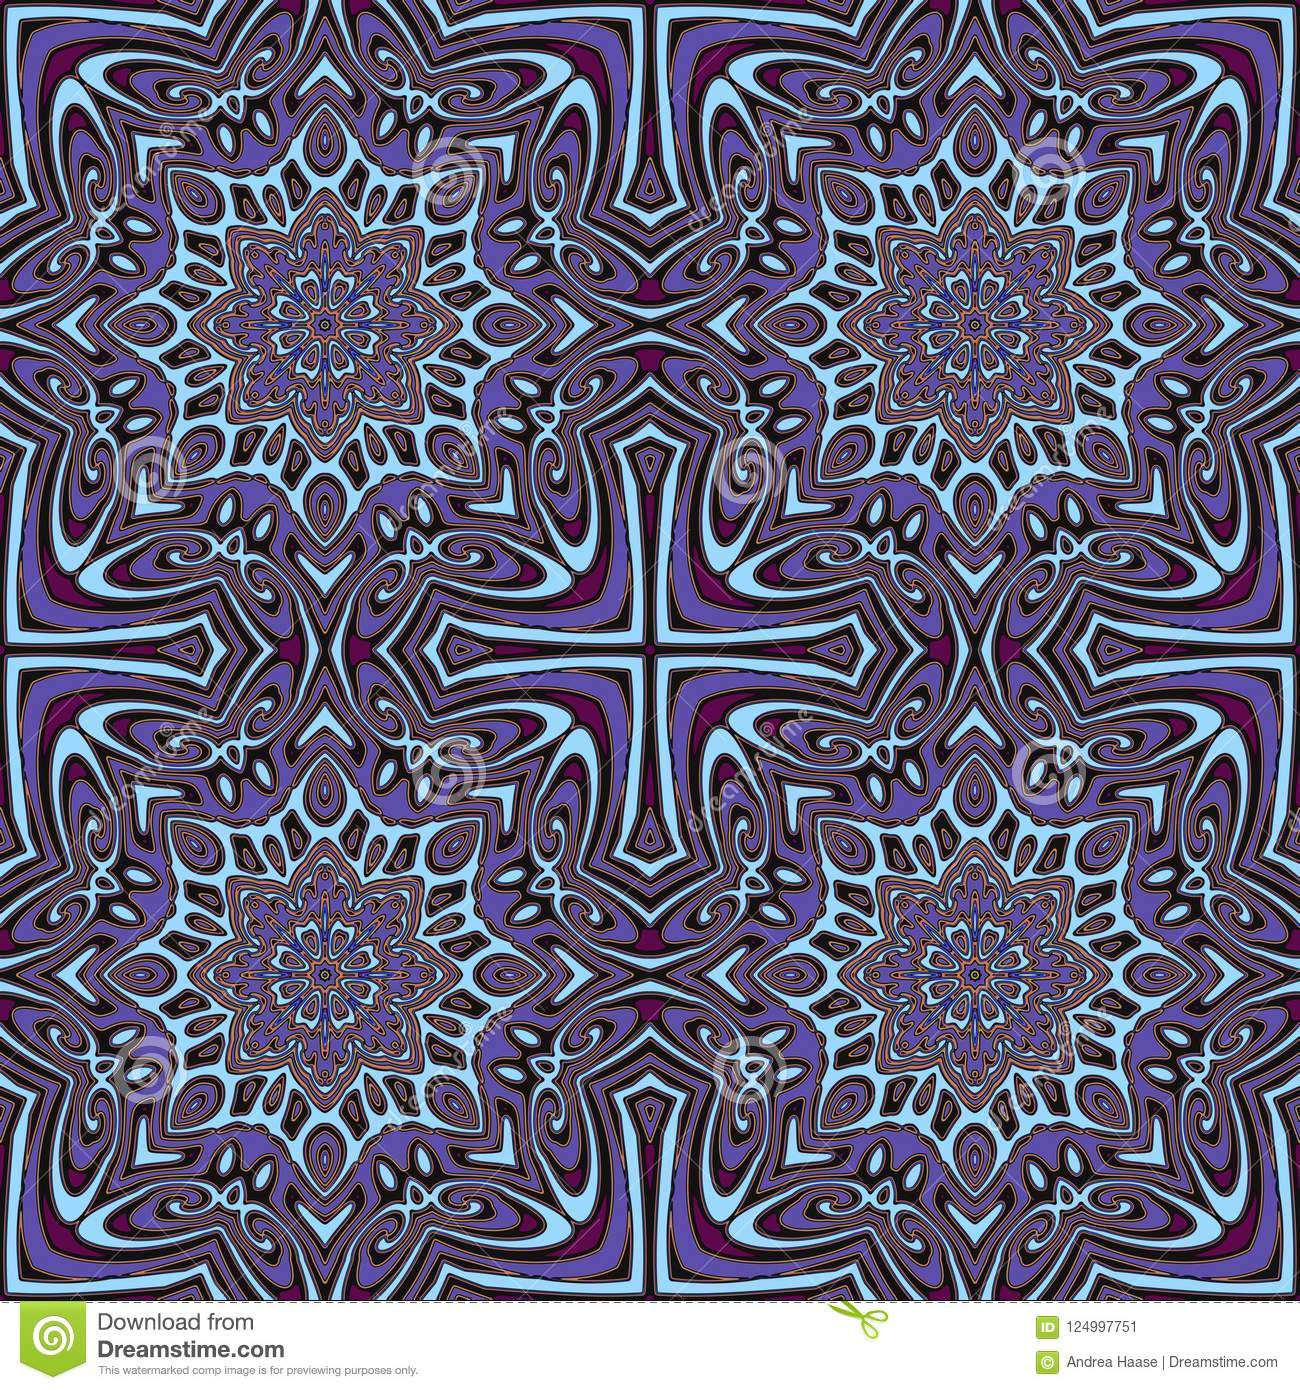 https www dreamstime com colorful seamless pattern tile moroccan style purple aqua textile ceramic tiles wallpaper fabric scrapbook gift wrapping image124997751